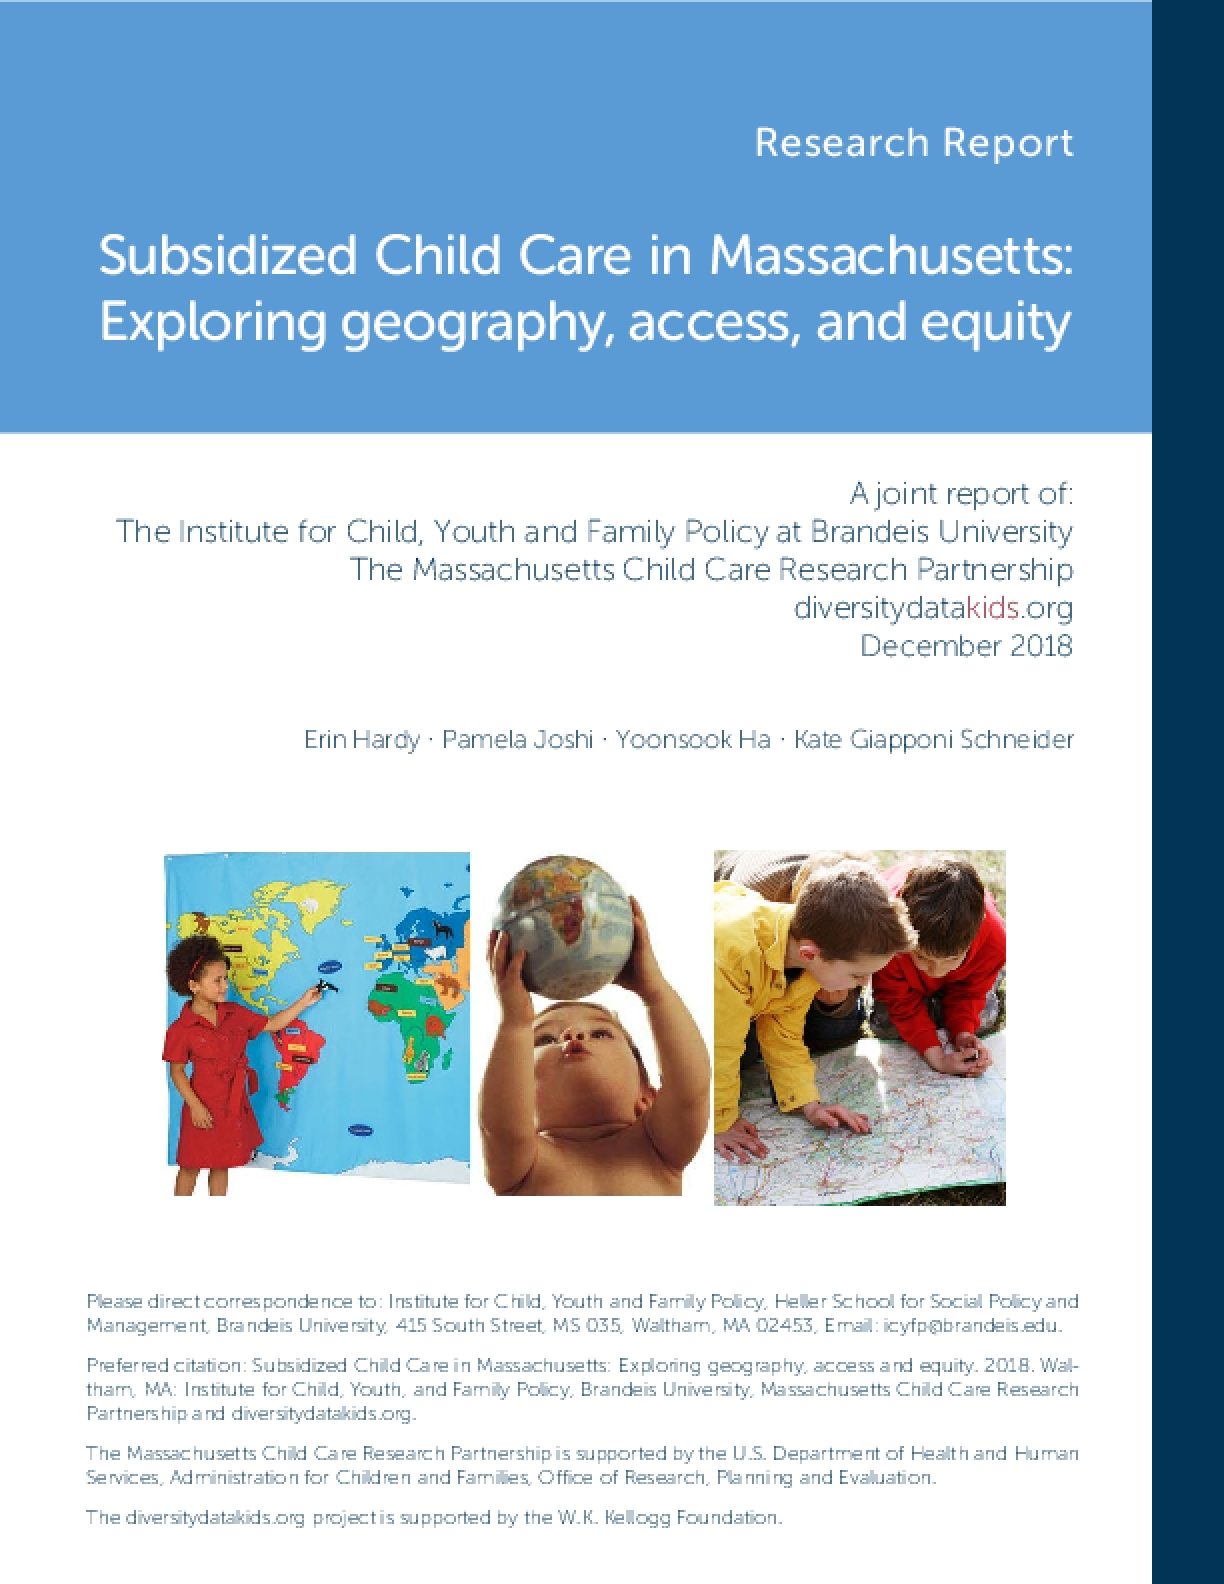 Subsidized Child Care in Massachusetts: Exploring Geography, Access, and Equity